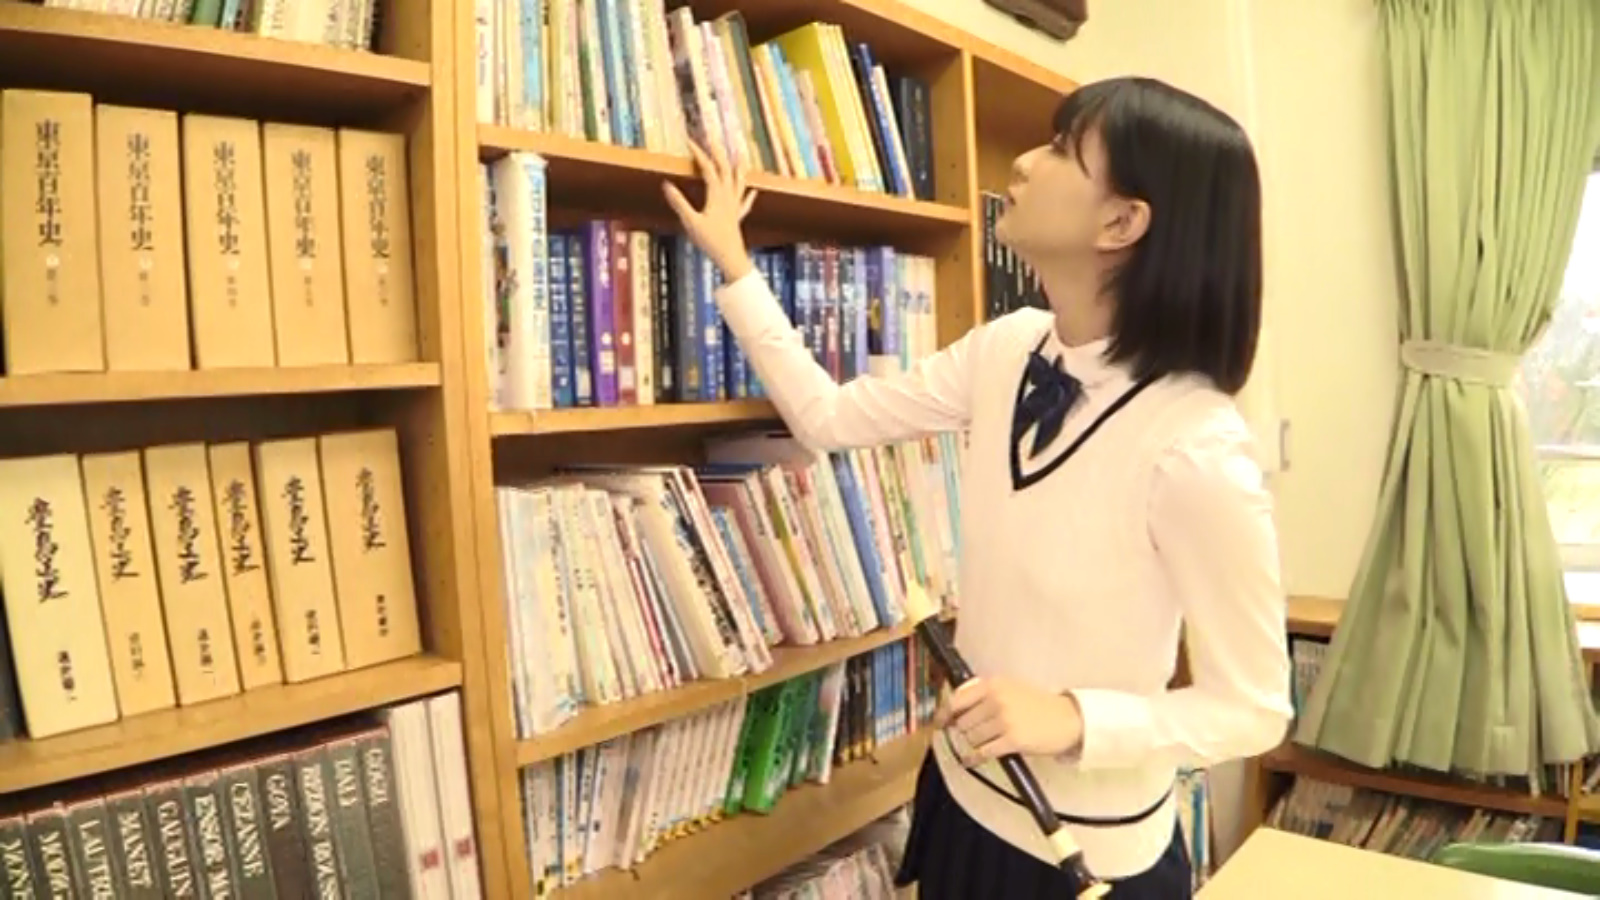 Every secret in the library099